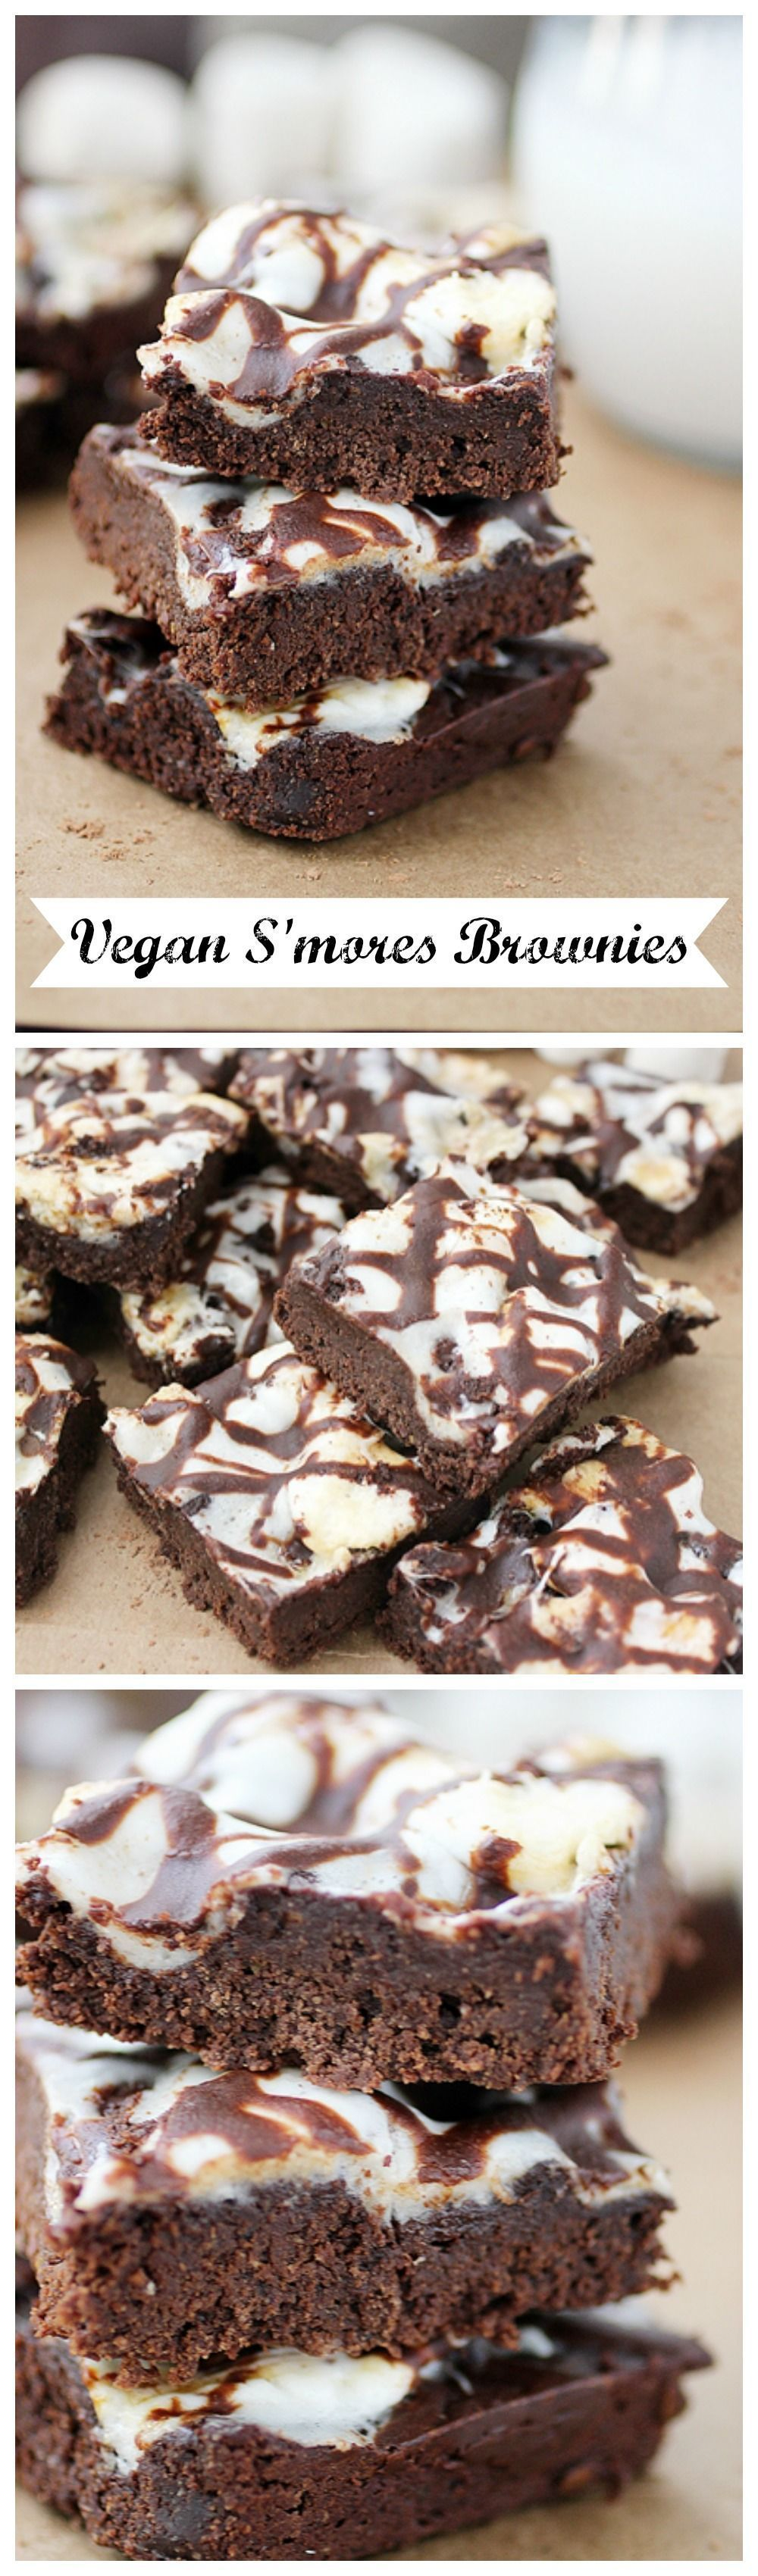 Fudgy Marshmallow S'mores Brownies #veganmarshmallows Fudgy, sweet brownies topped with vegan marshmallows! Vegan and amazing! #healthymarshmallows Fudgy Marshmallow S'mores Brownies #veganmarshmallows Fudgy, sweet brownies topped with vegan marshmallows! Vegan and amazing! #veganmarshmallows Fudgy Marshmallow S'mores Brownies #veganmarshmallows Fudgy, sweet brownies topped with vegan marshmallows! Vegan and amazing! #healthymarshmallows Fudgy Marshmallow S'mores Brownies #veganmarshmallows Fudg #healthymarshmallows